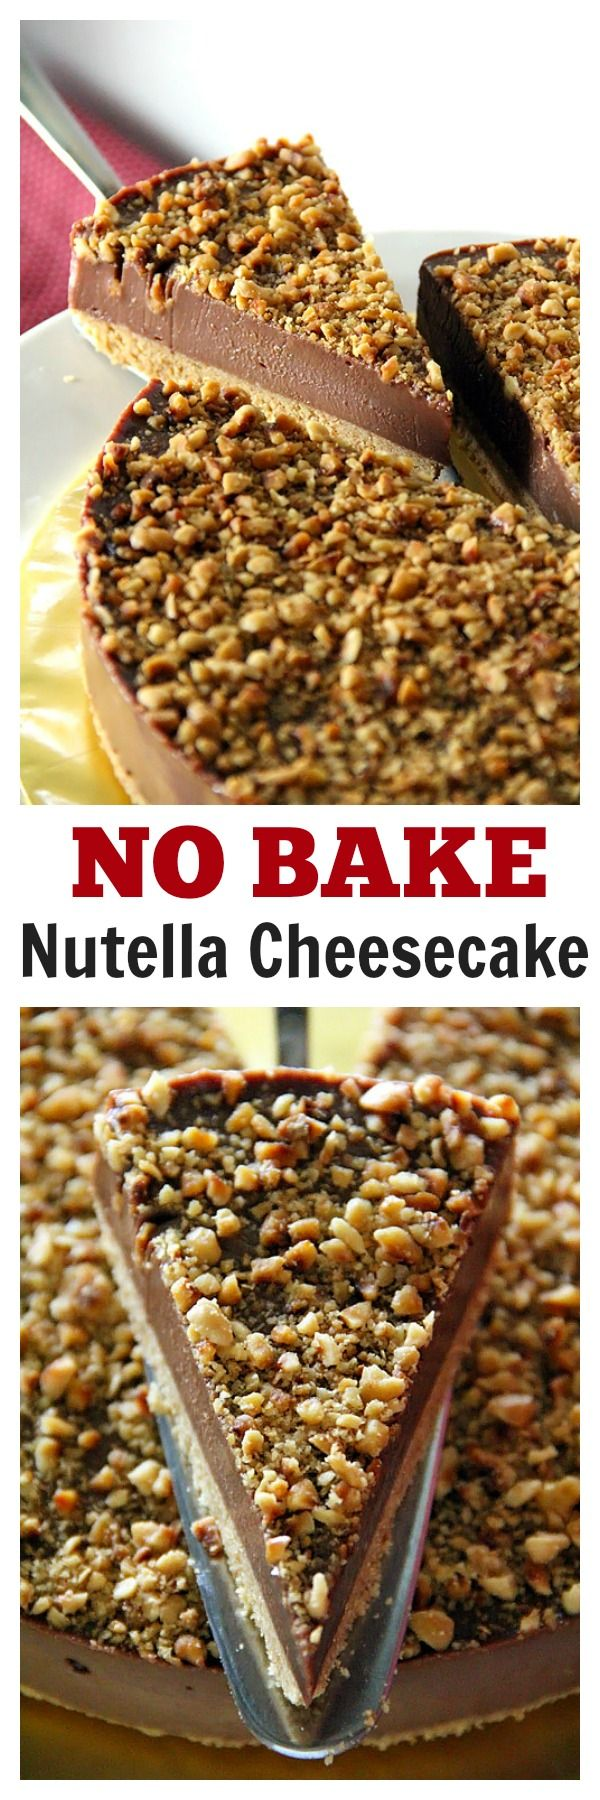 Cheesecake Cheesecake    and Cheesecake air Nutella   Nutella   air Nutella max Recipe